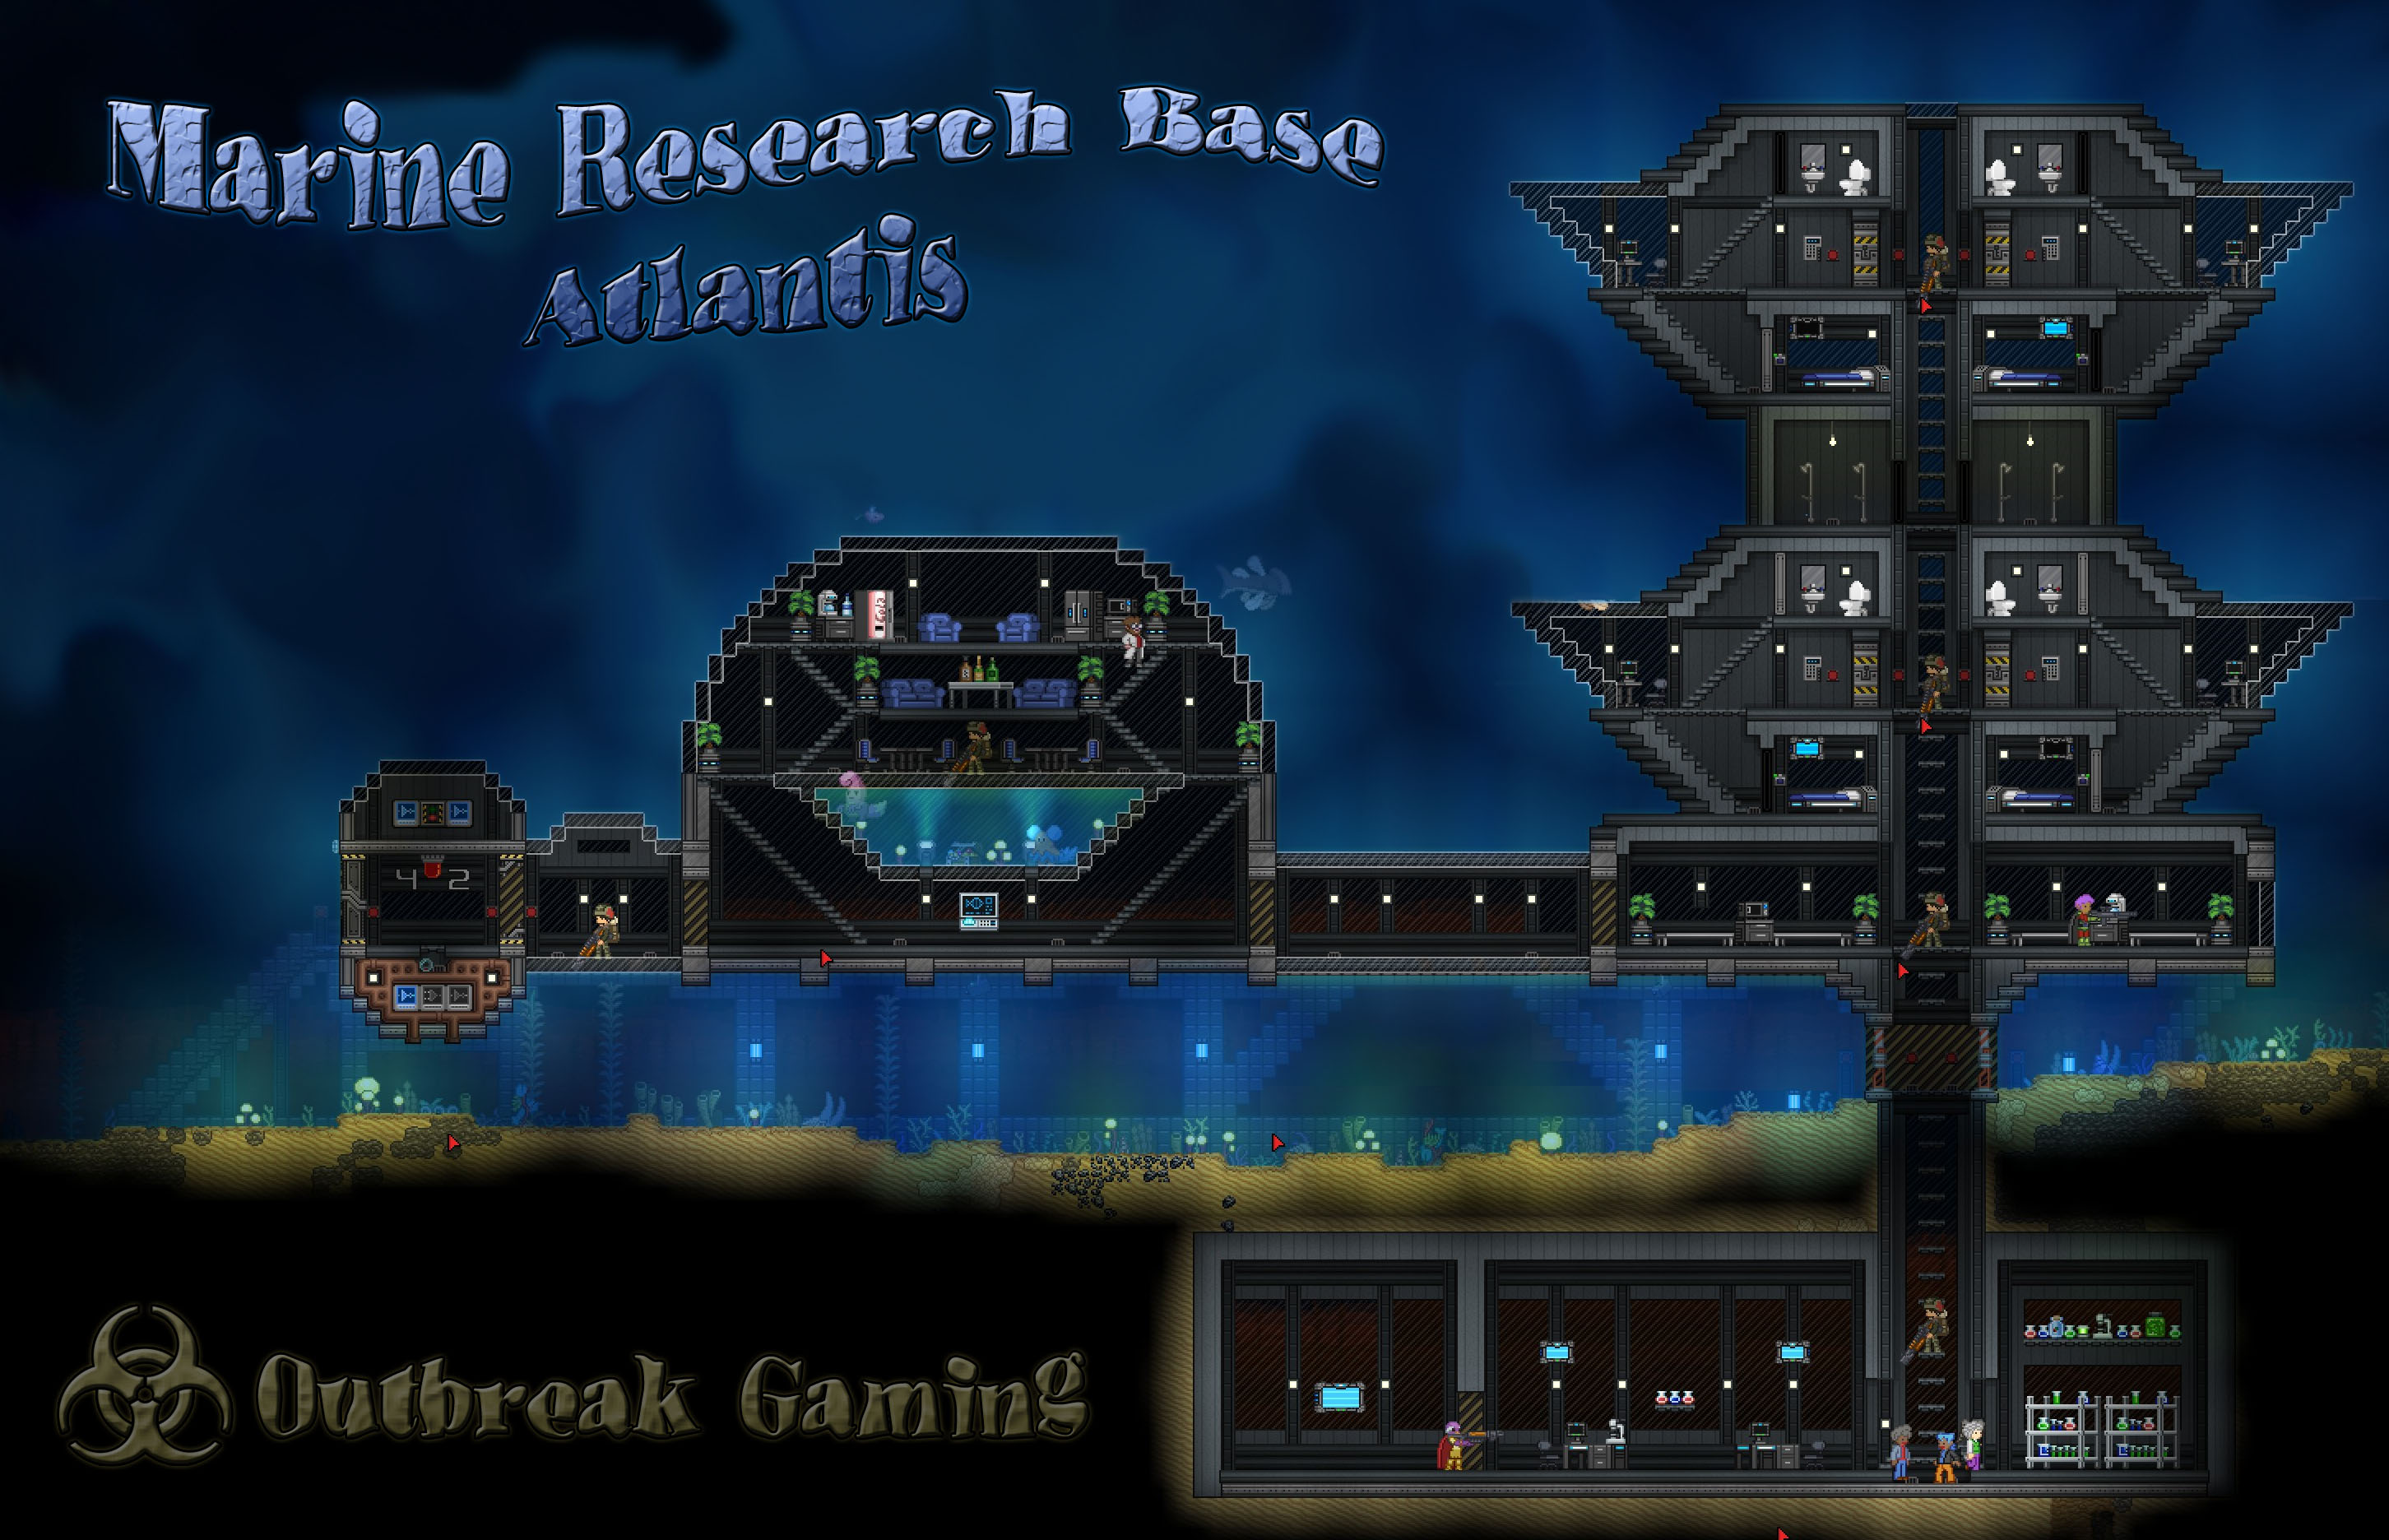 Starbound – Outbreak Gaming